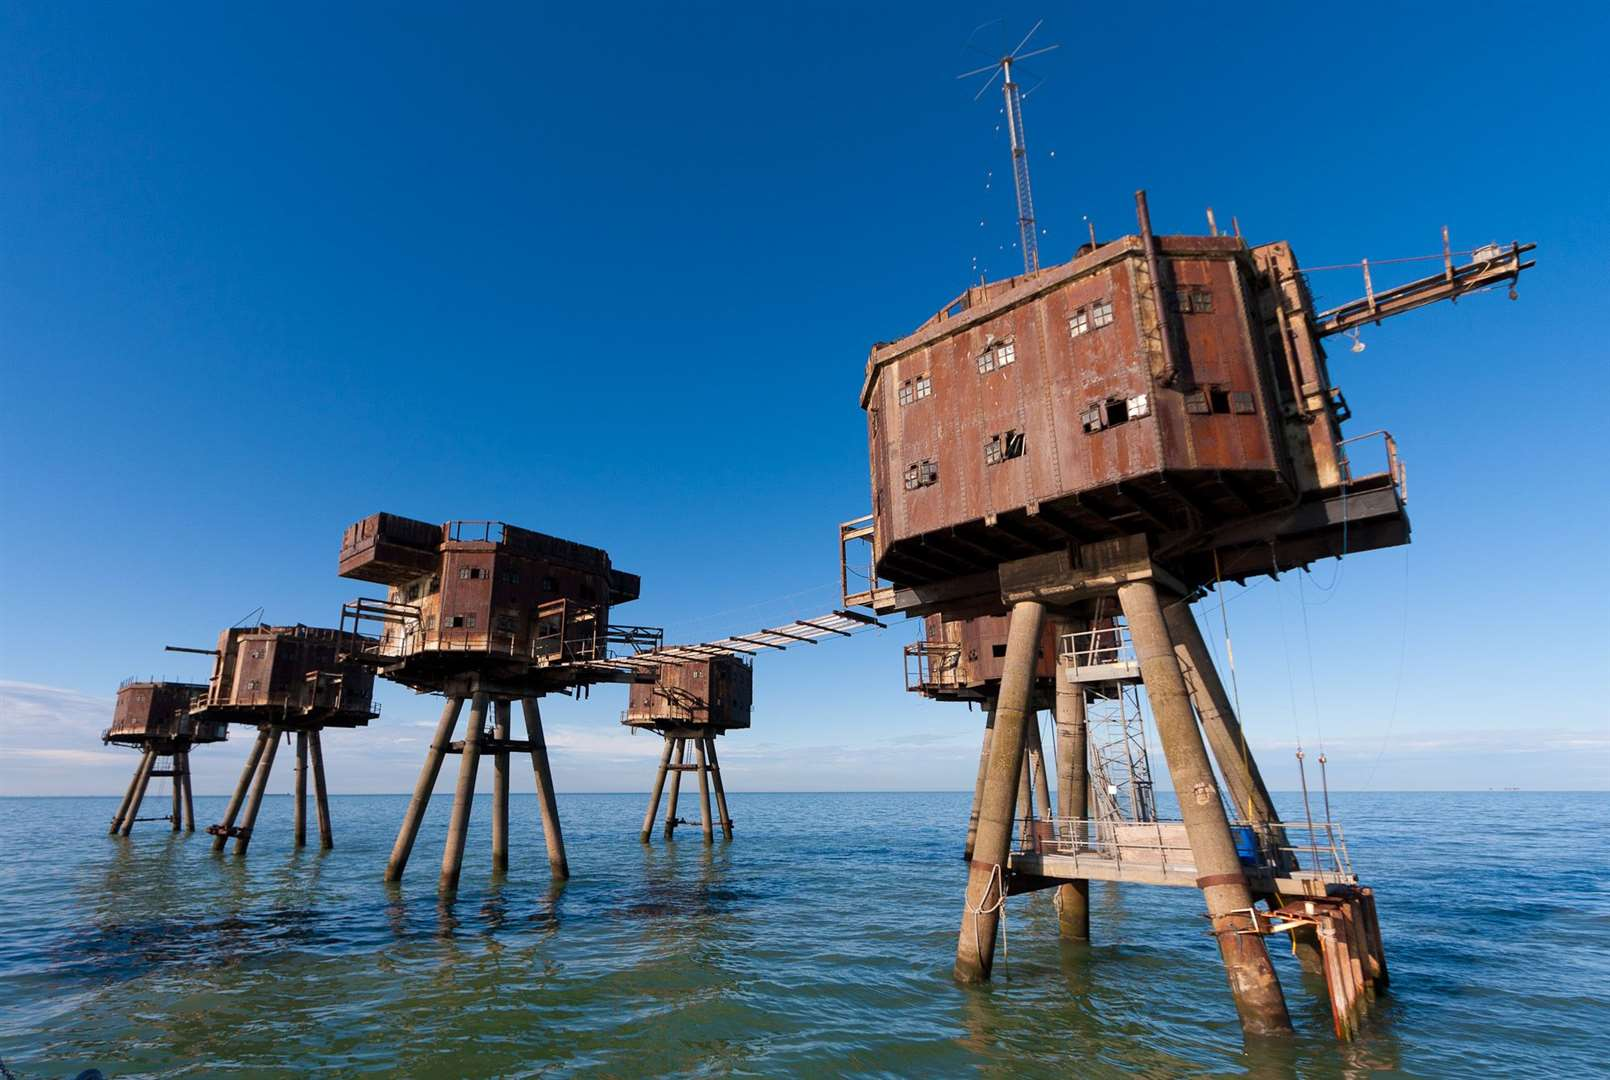 The Maunsell Forts off the Kent coast